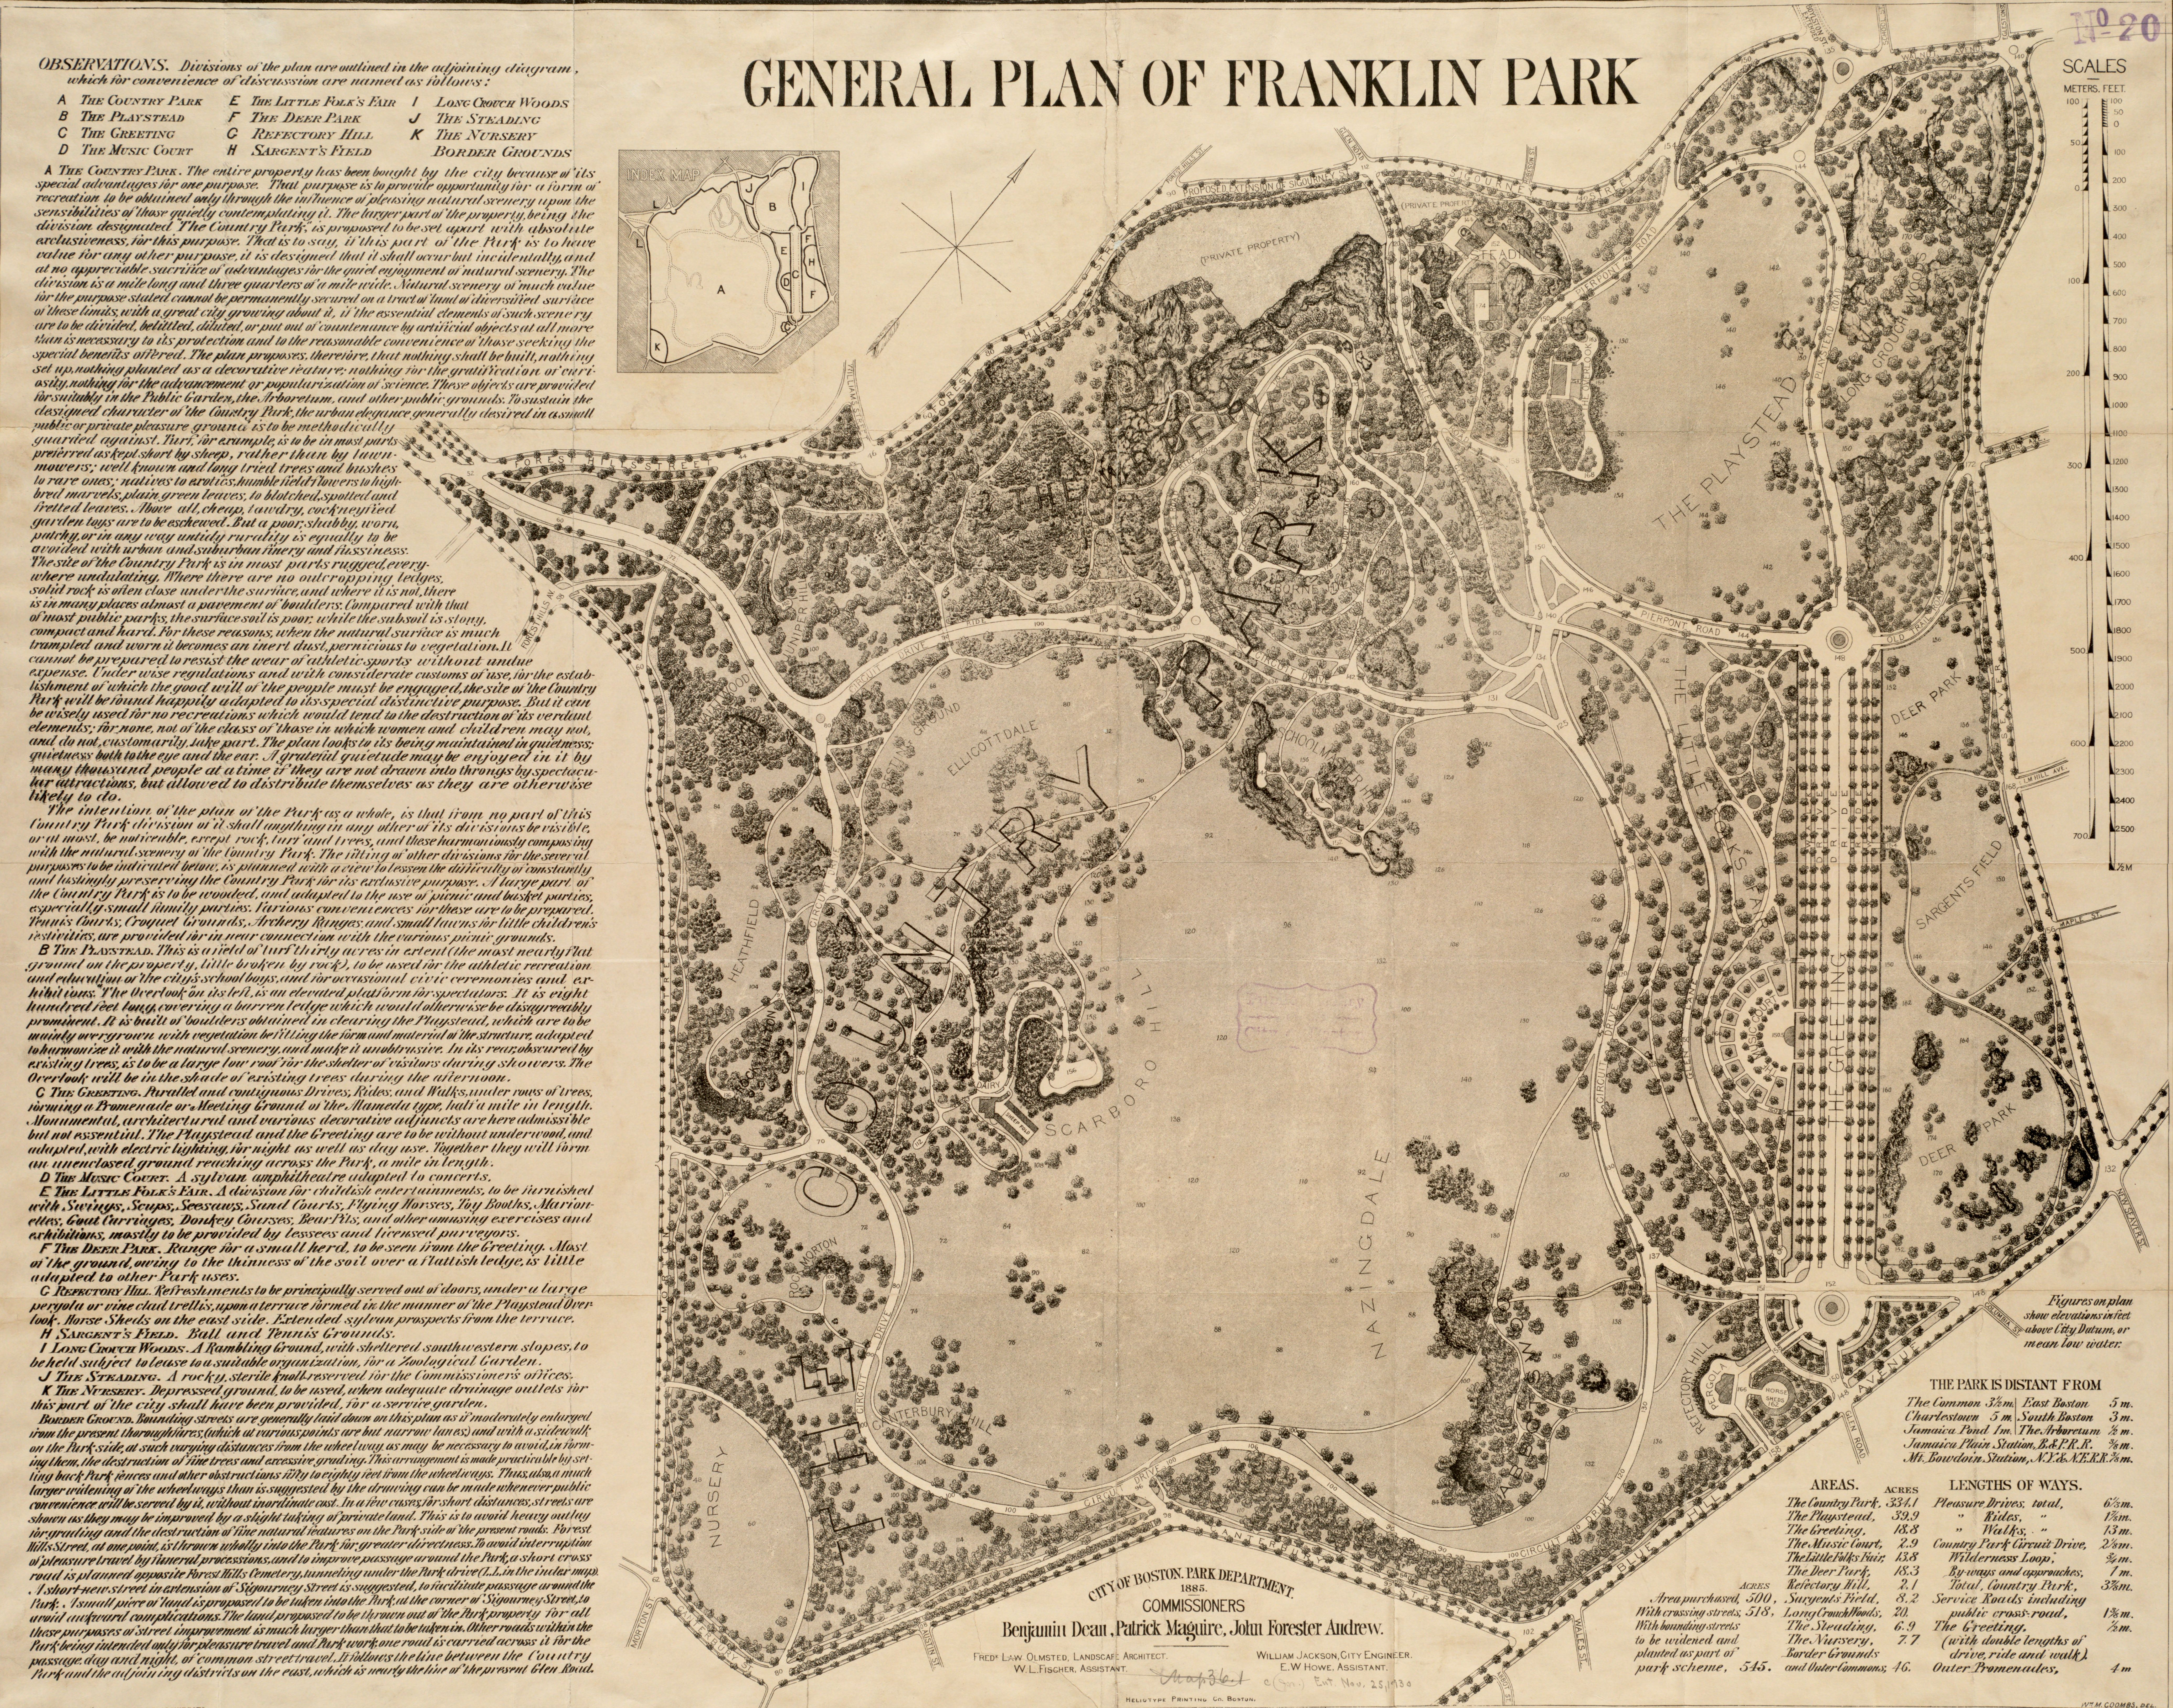 An 1885 general plan of Franklin Park drawn by Frederick Law Olmstead and John Charles Olmstead from the Norman B. Leventhal Map Center Collection.